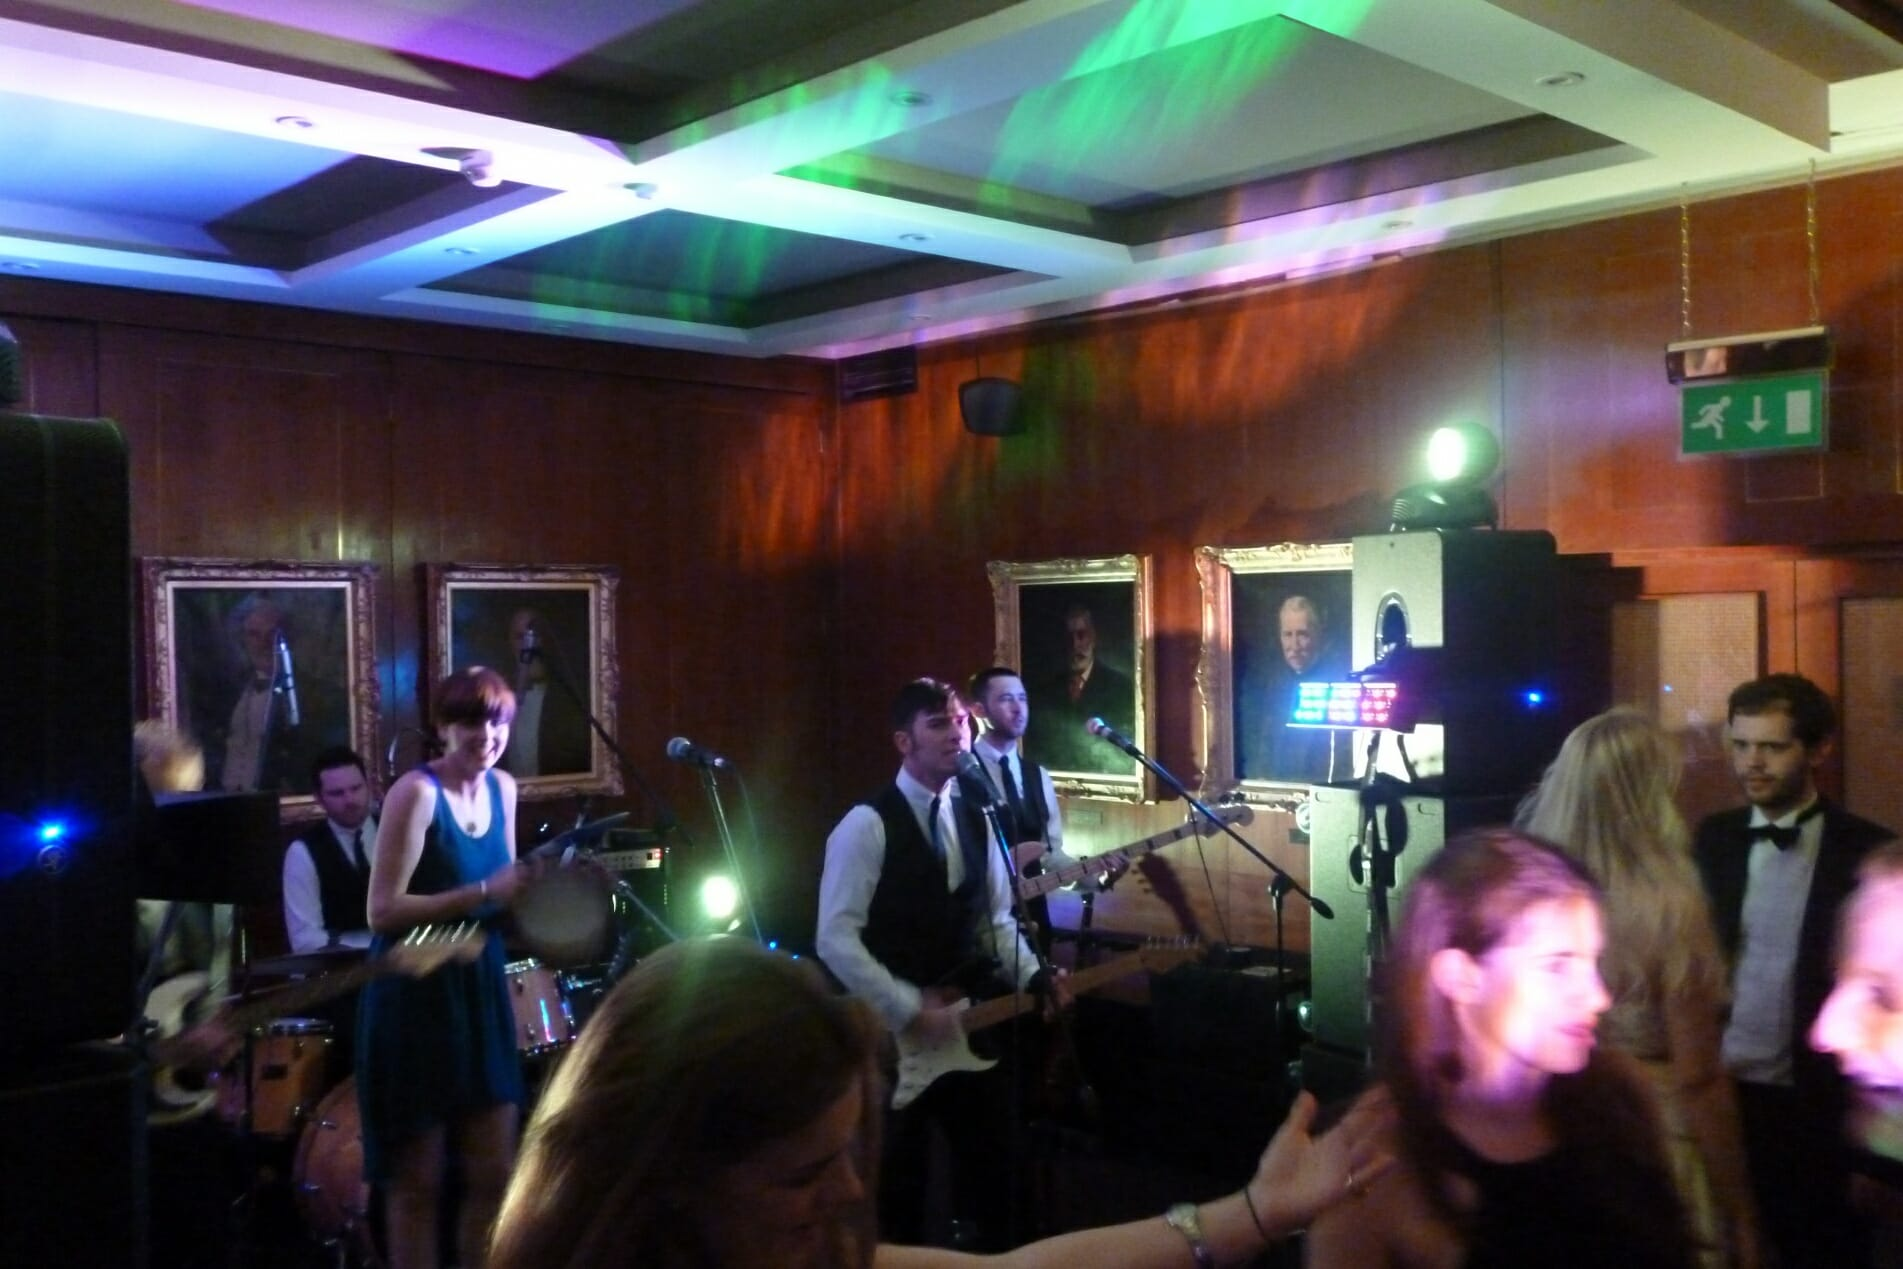 party band in wiltshire, party band in berkshire, party band in hampshire, party band in dorset, party band in devon, party band in south west, party band in the midlands, party band in south east, wedding band in devon, party band in Oxfordshire, party band in oxford, party band in Herefordshire, party band in Wales, party band in South wales, party band in Hereford, party band in Cirencester, party band in Reading,party band in Cardiff, party band in Glamorgan, party band in Gloucestershire